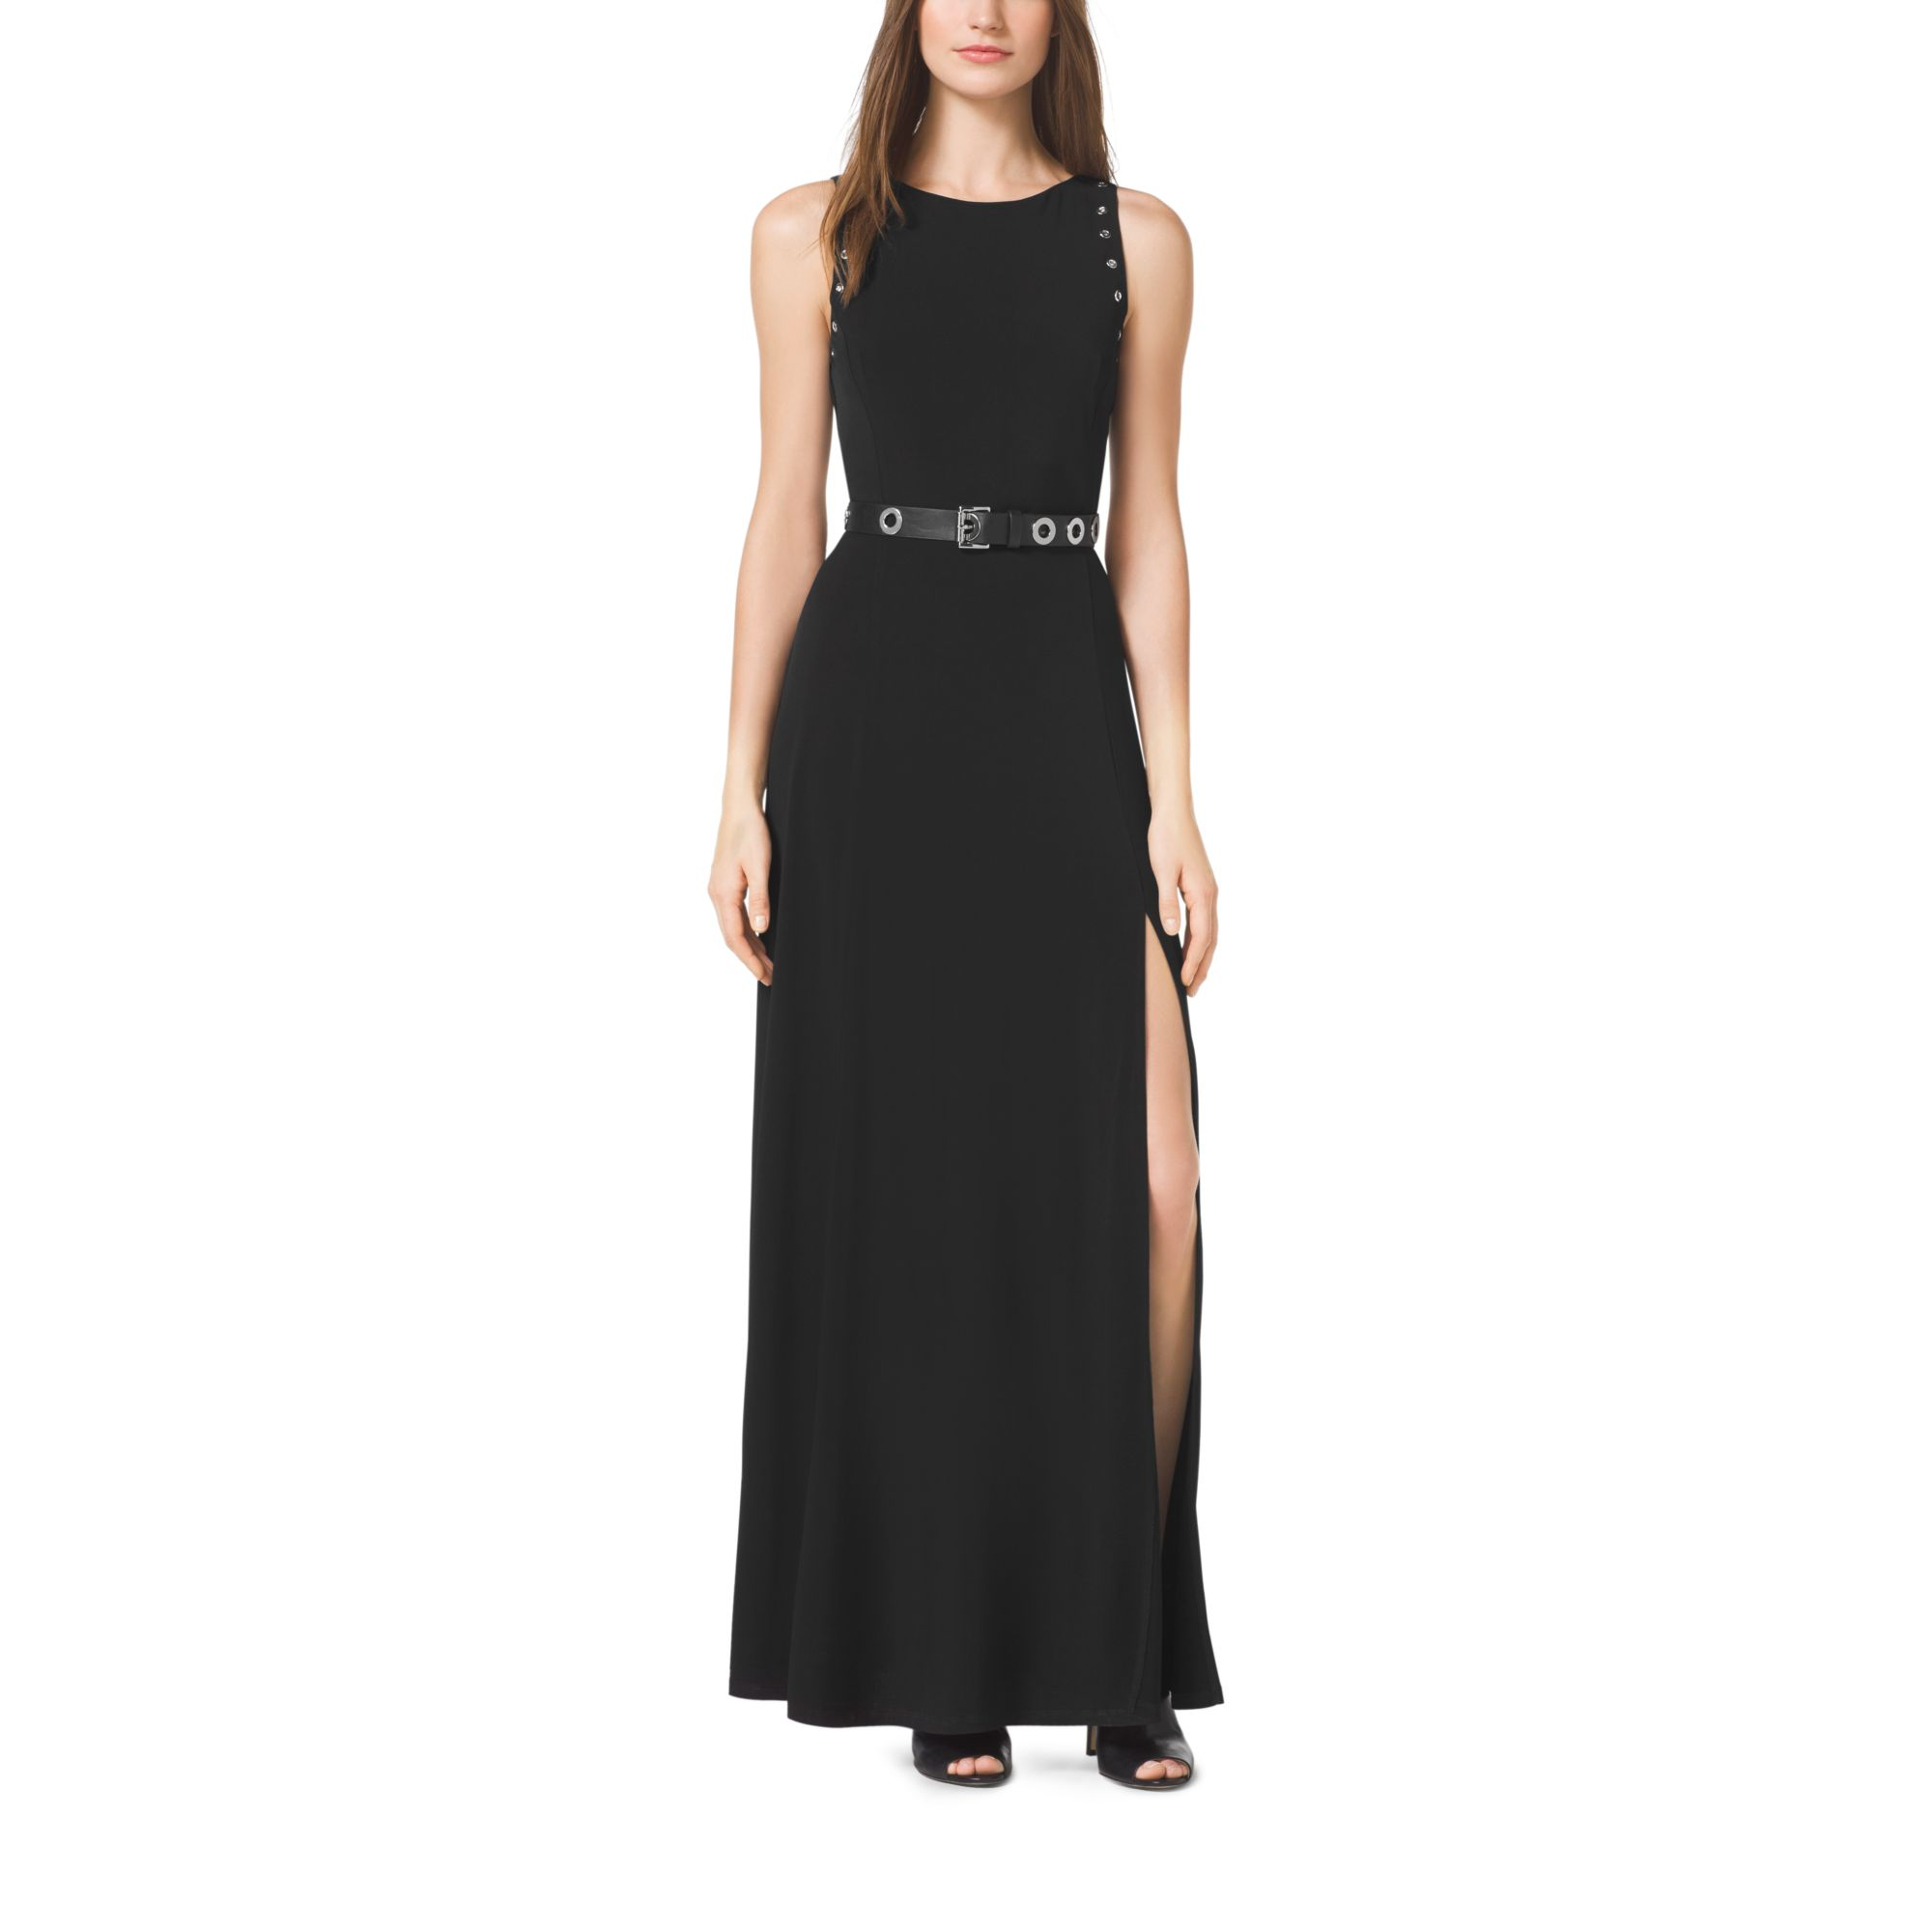 30d3da83d24 Lyst Michael Kors Grommet Belted Maxi Dress In Black